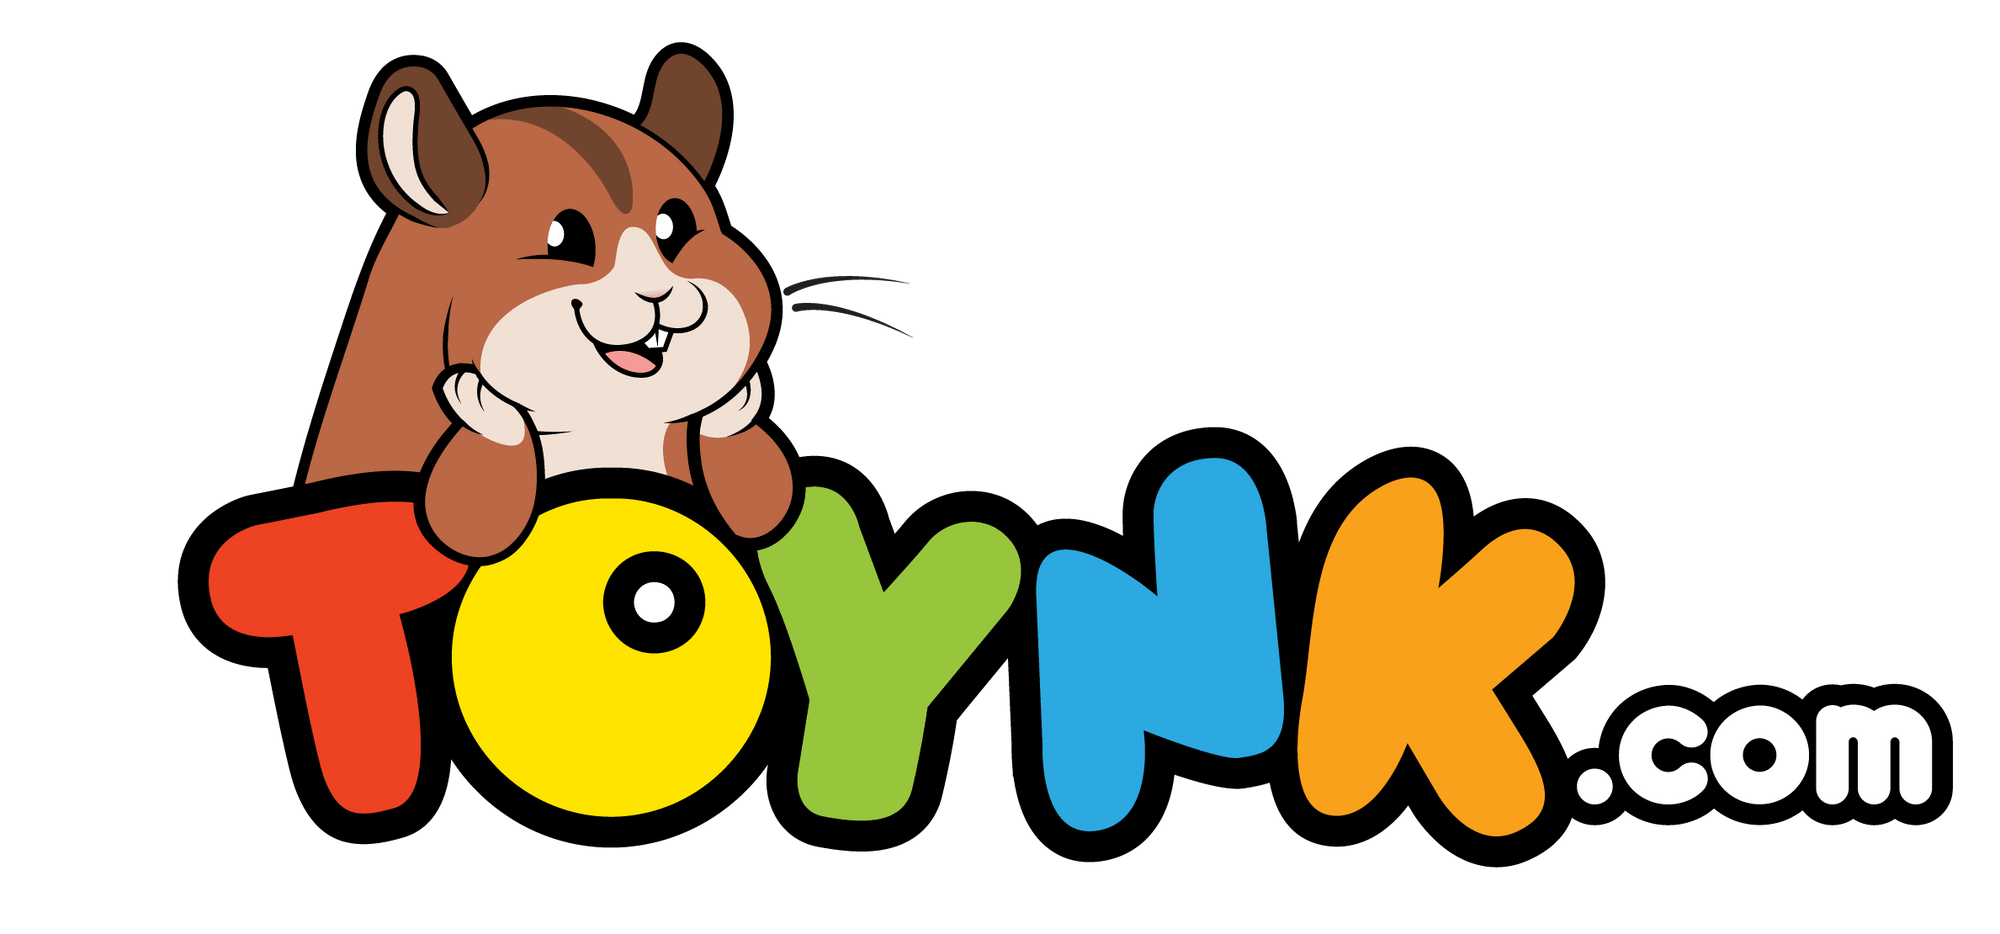 Toynk logo with company mascot, Waffles the Hamster, poking his head out from the top.